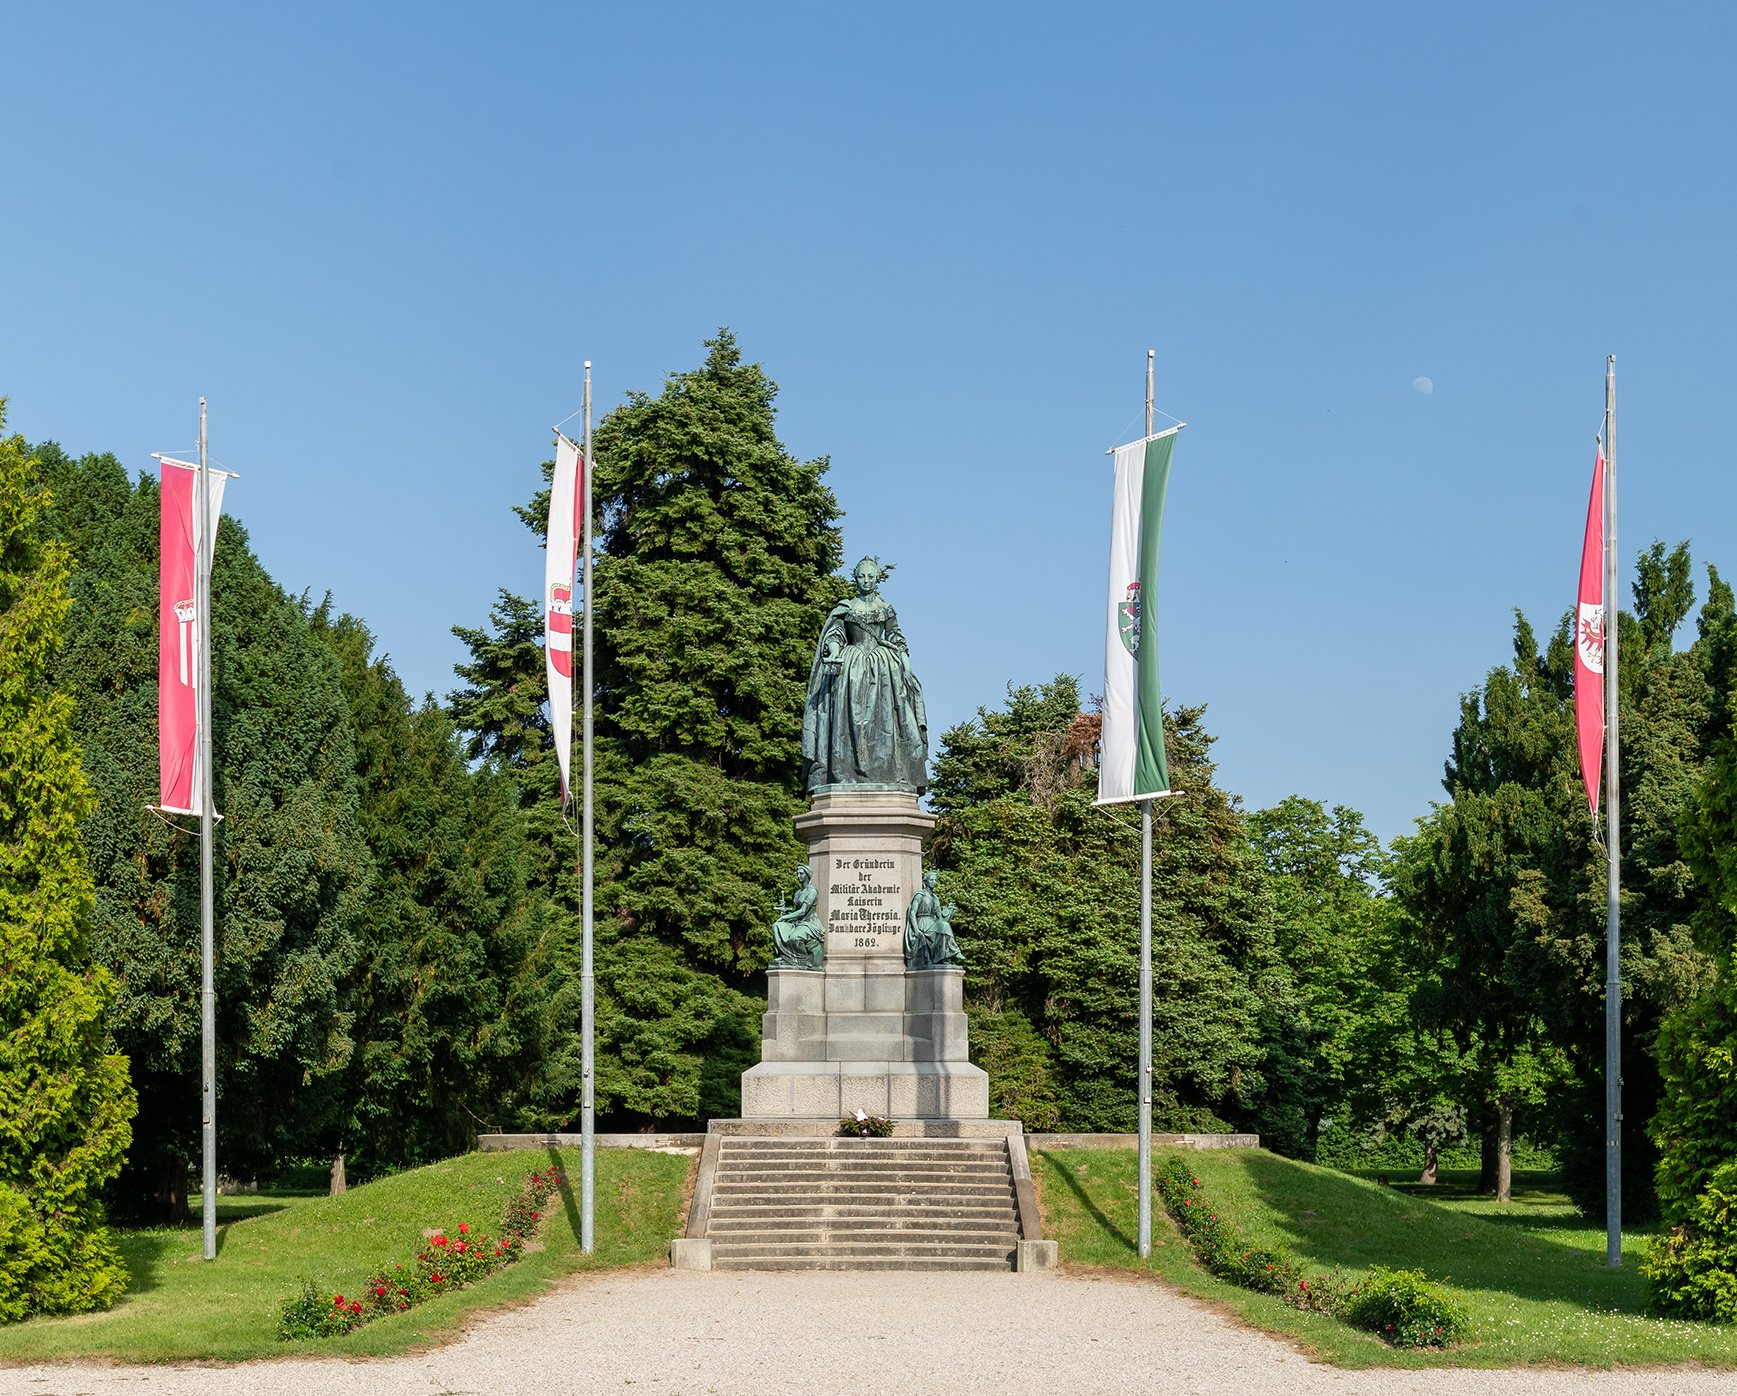 Maria Theresien-Statue